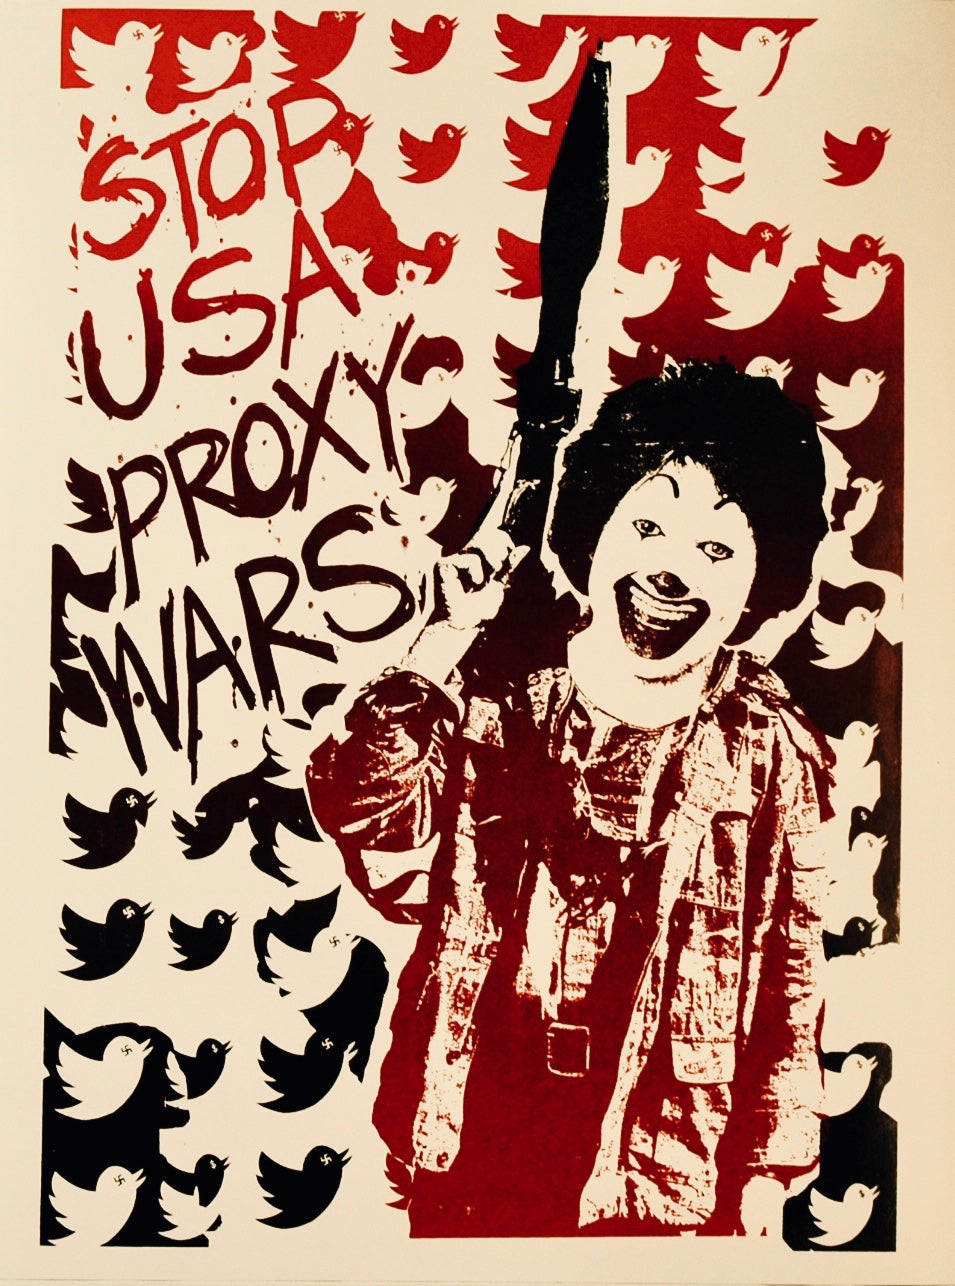 Stop USA Proxy Wars